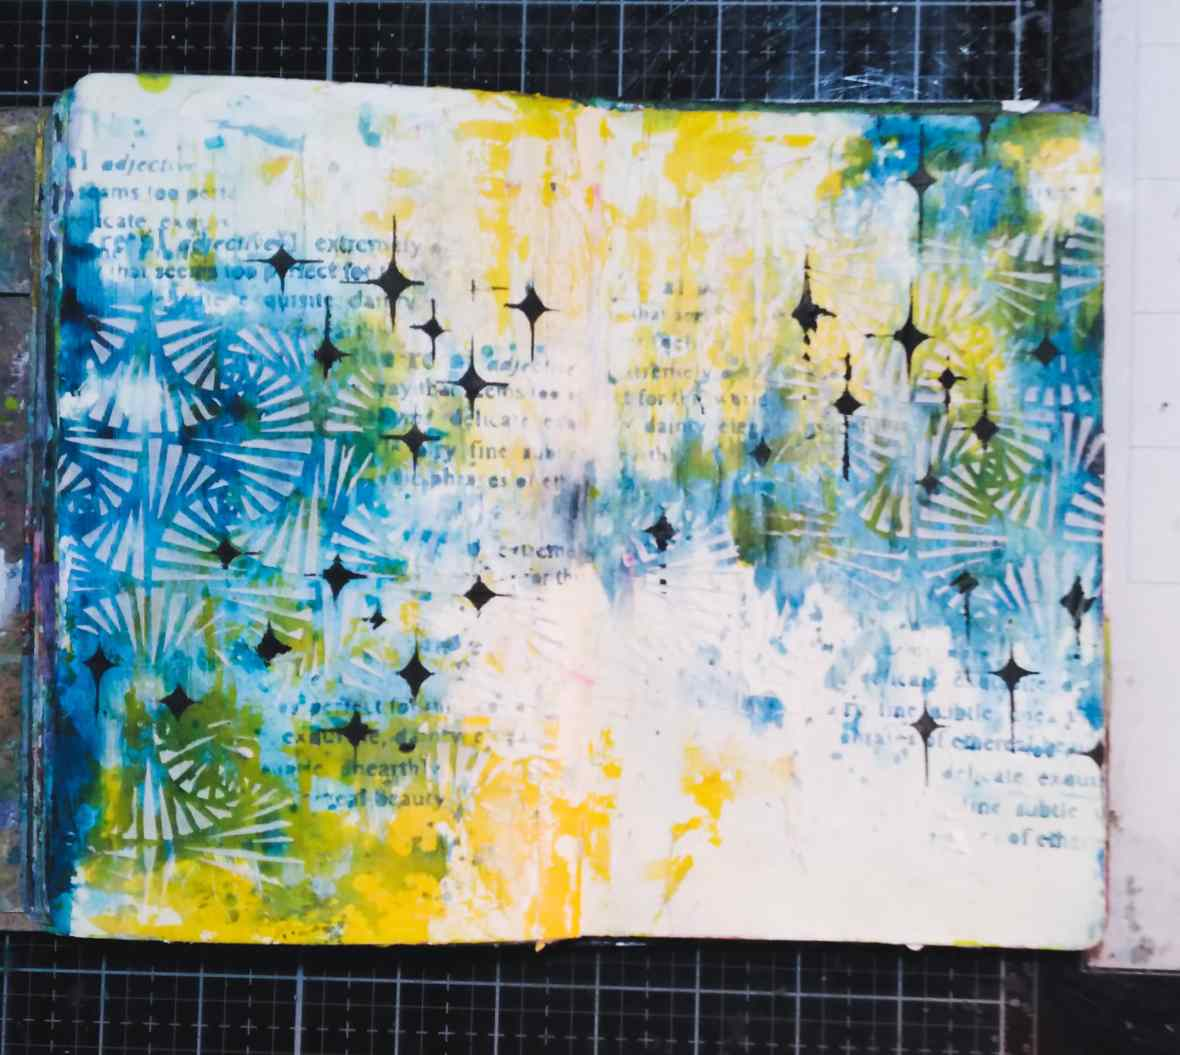 Background stenciling with acrylic paints, stencils and texture products